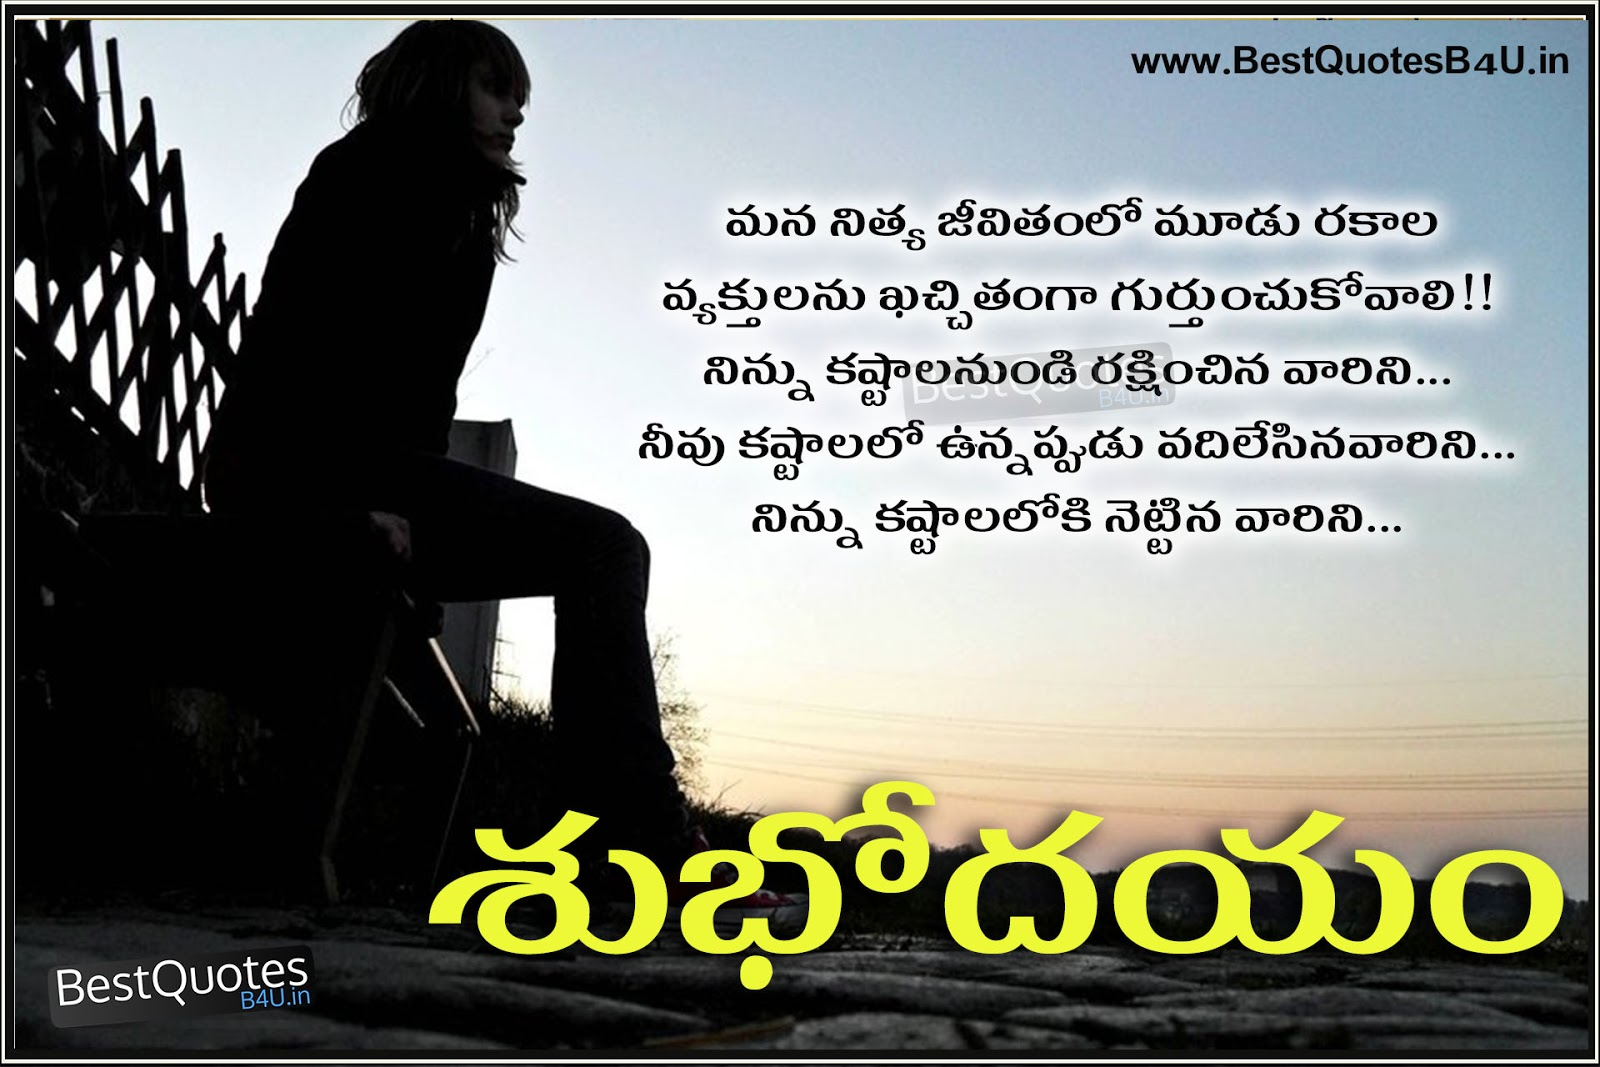 Nice Wallpapers With Quotes About Life In Hindi Snap Telugu Good Morning Messages Quotaions Bestquotesb4u